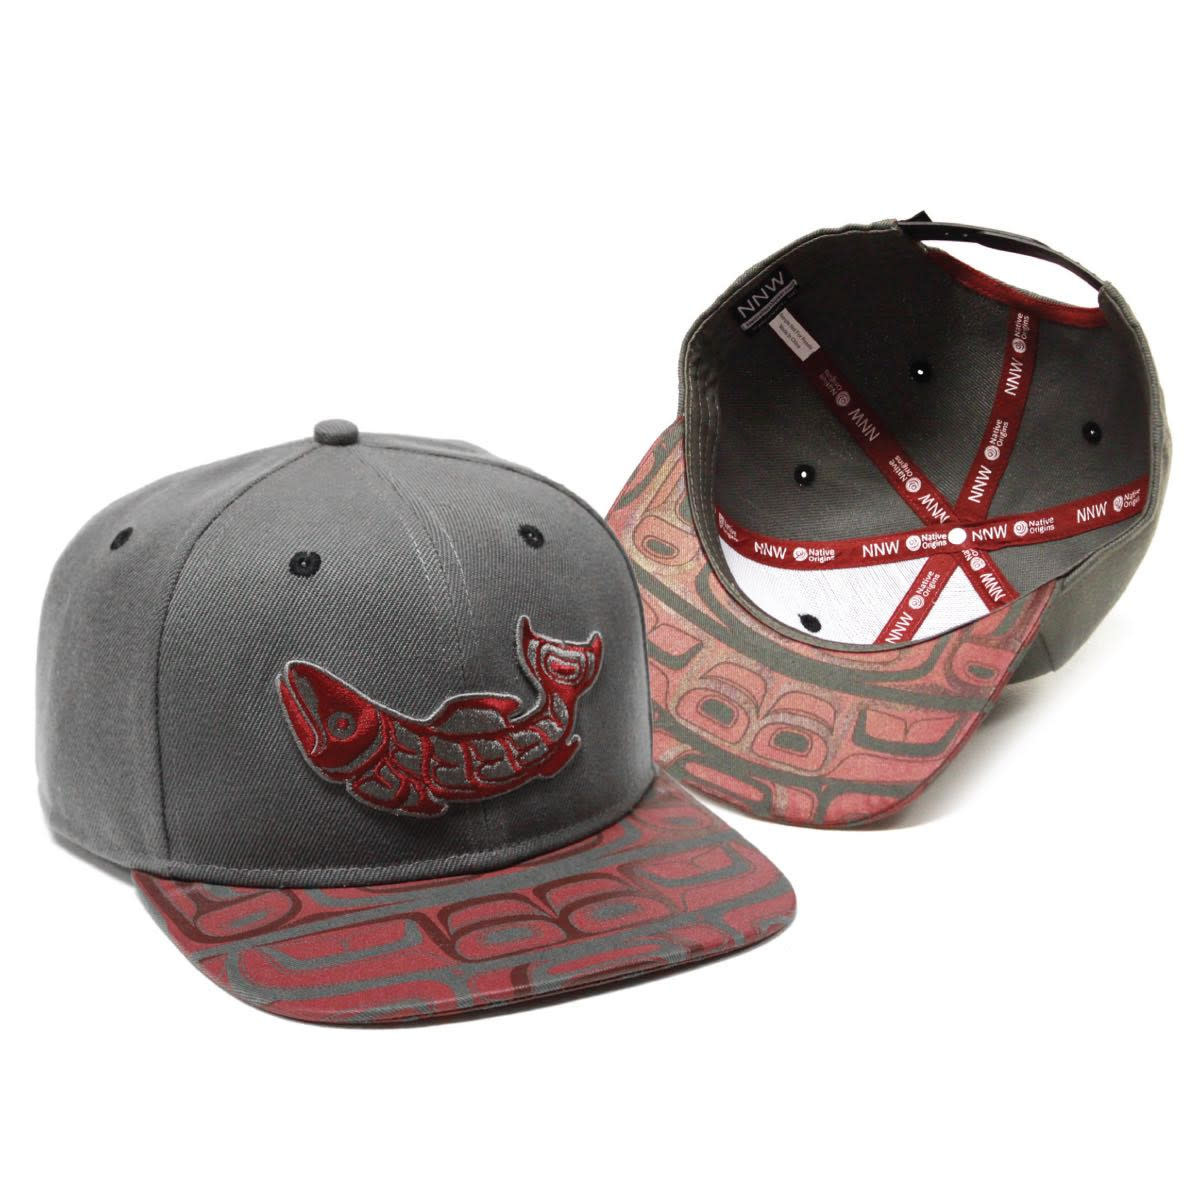 Snap Back Hat - Sustain by Corey W. Moraes-1